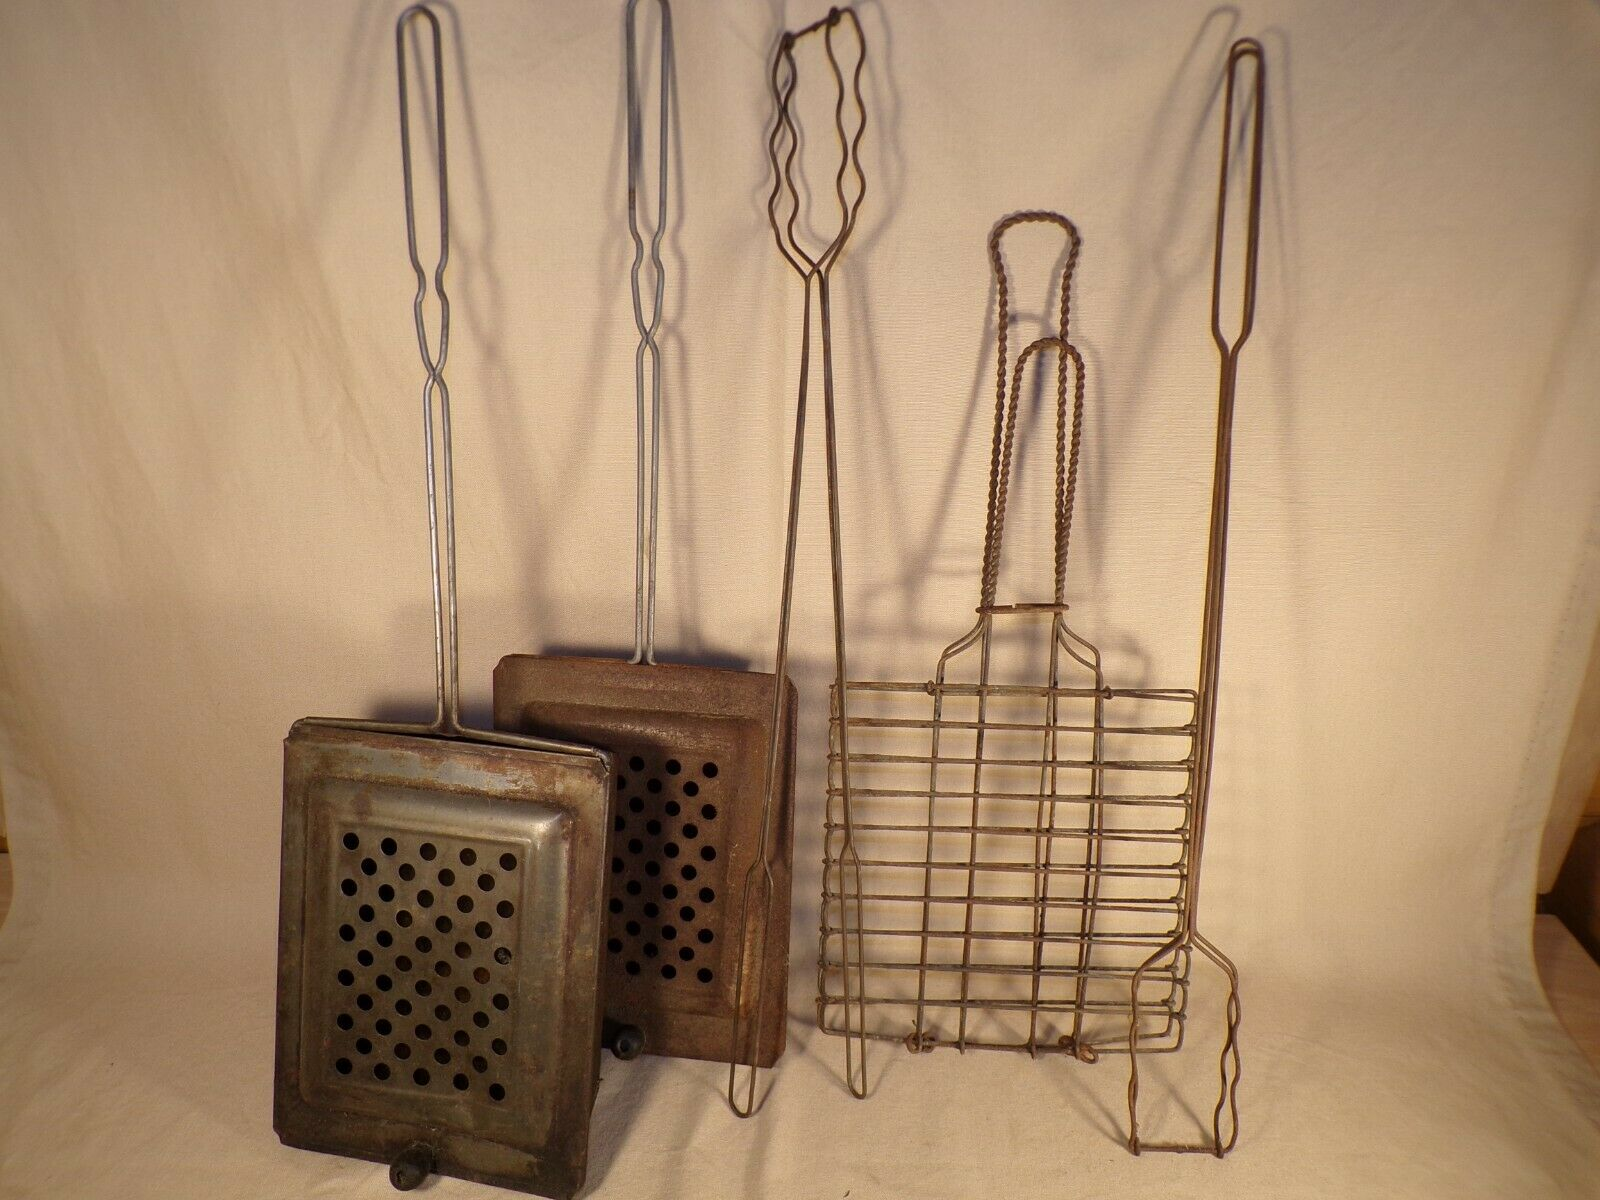 Vintage Popcorn Popper Campfire Fire Twisted Wire  Handle Camping Outdoor Decor  will make you satisfied